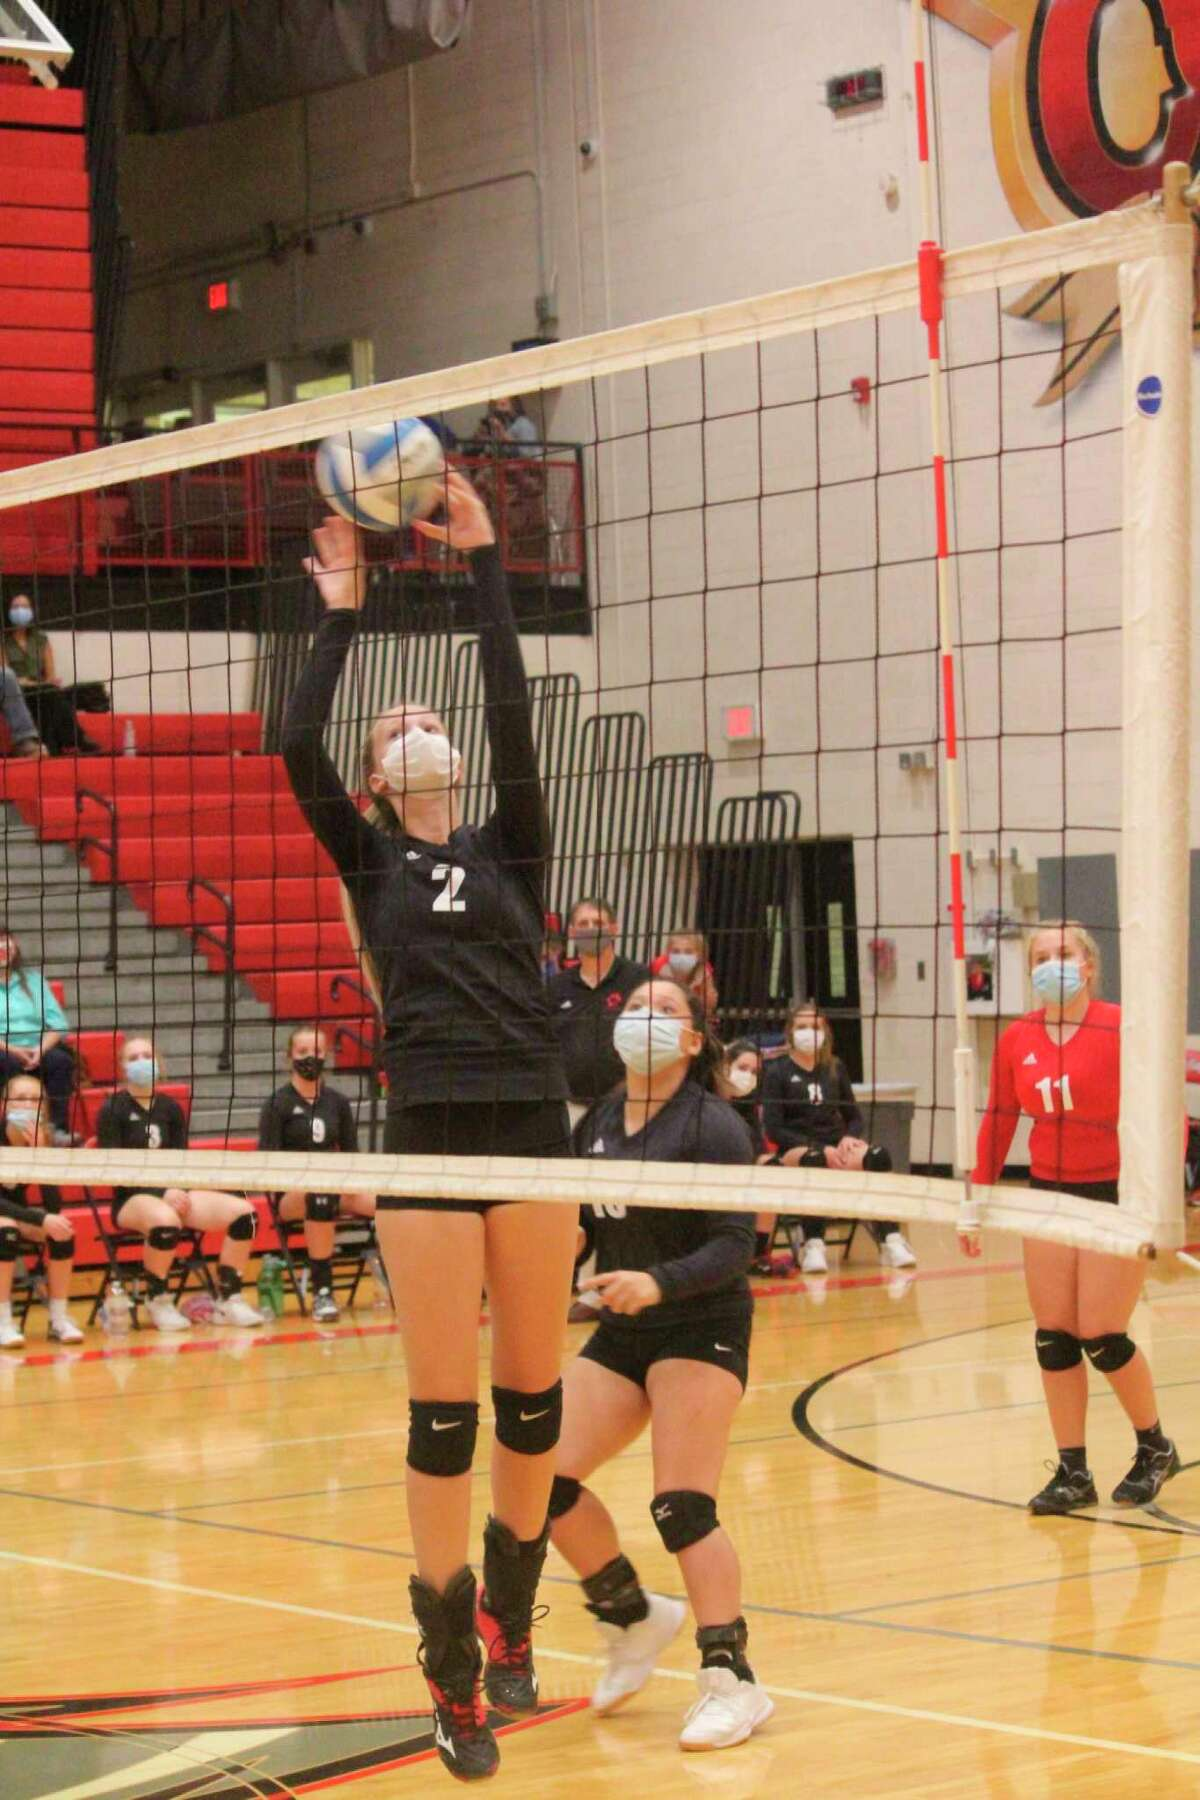 Reed City's Kyleigh Weck (2) works with the ball against Chippewa Hills. (Herald Review photo/John Raffel)